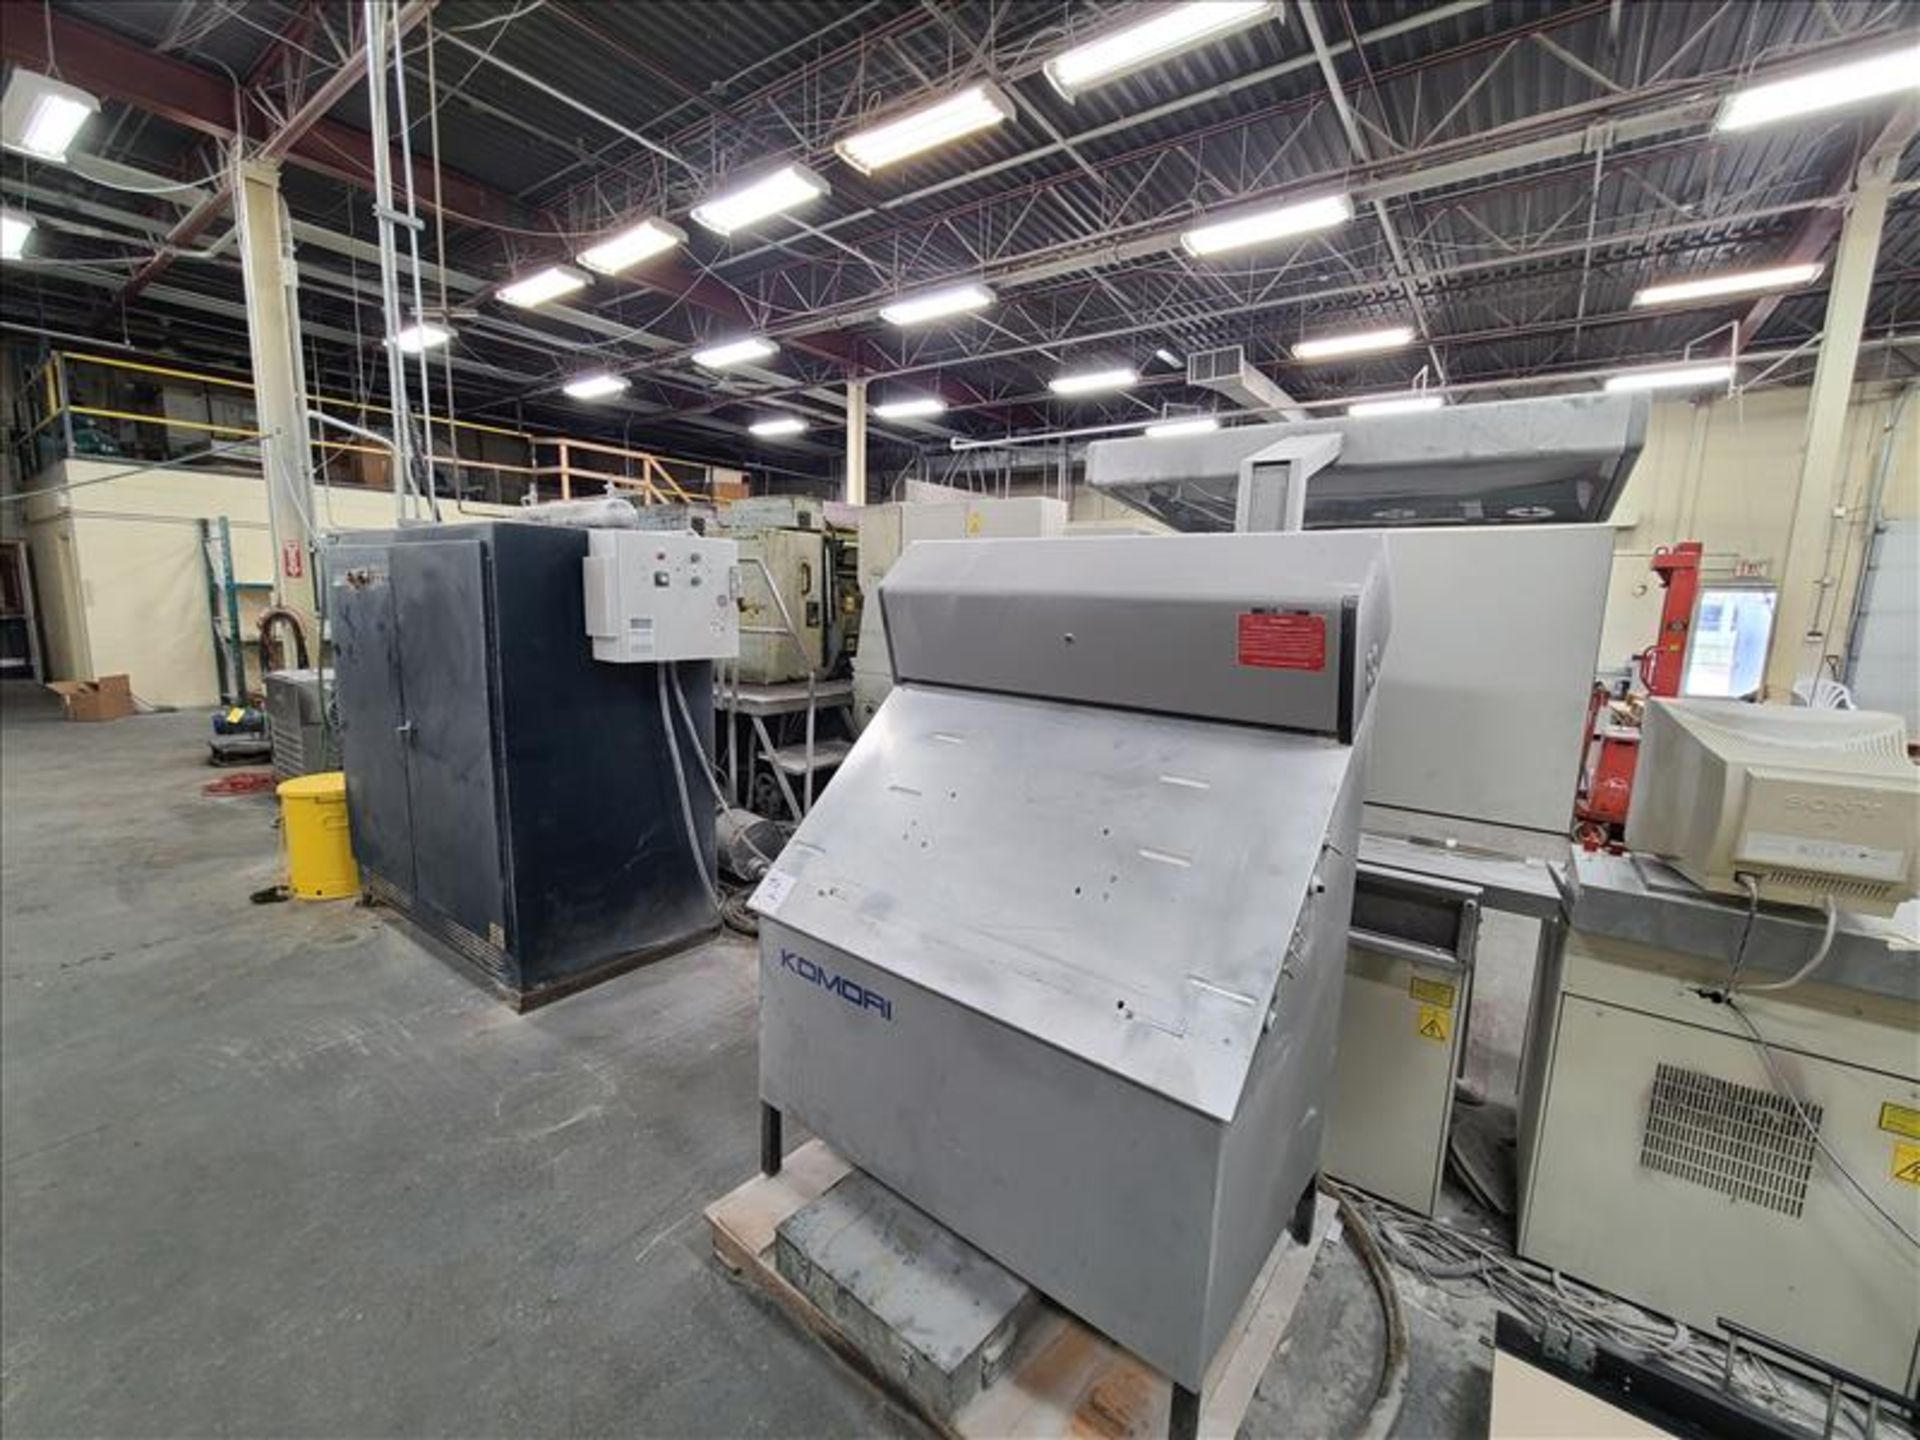 Komori 4-color offset printing press, Series Lithrone 40, model L-440, S/N.2202 approx. 68 - Image 11 of 22